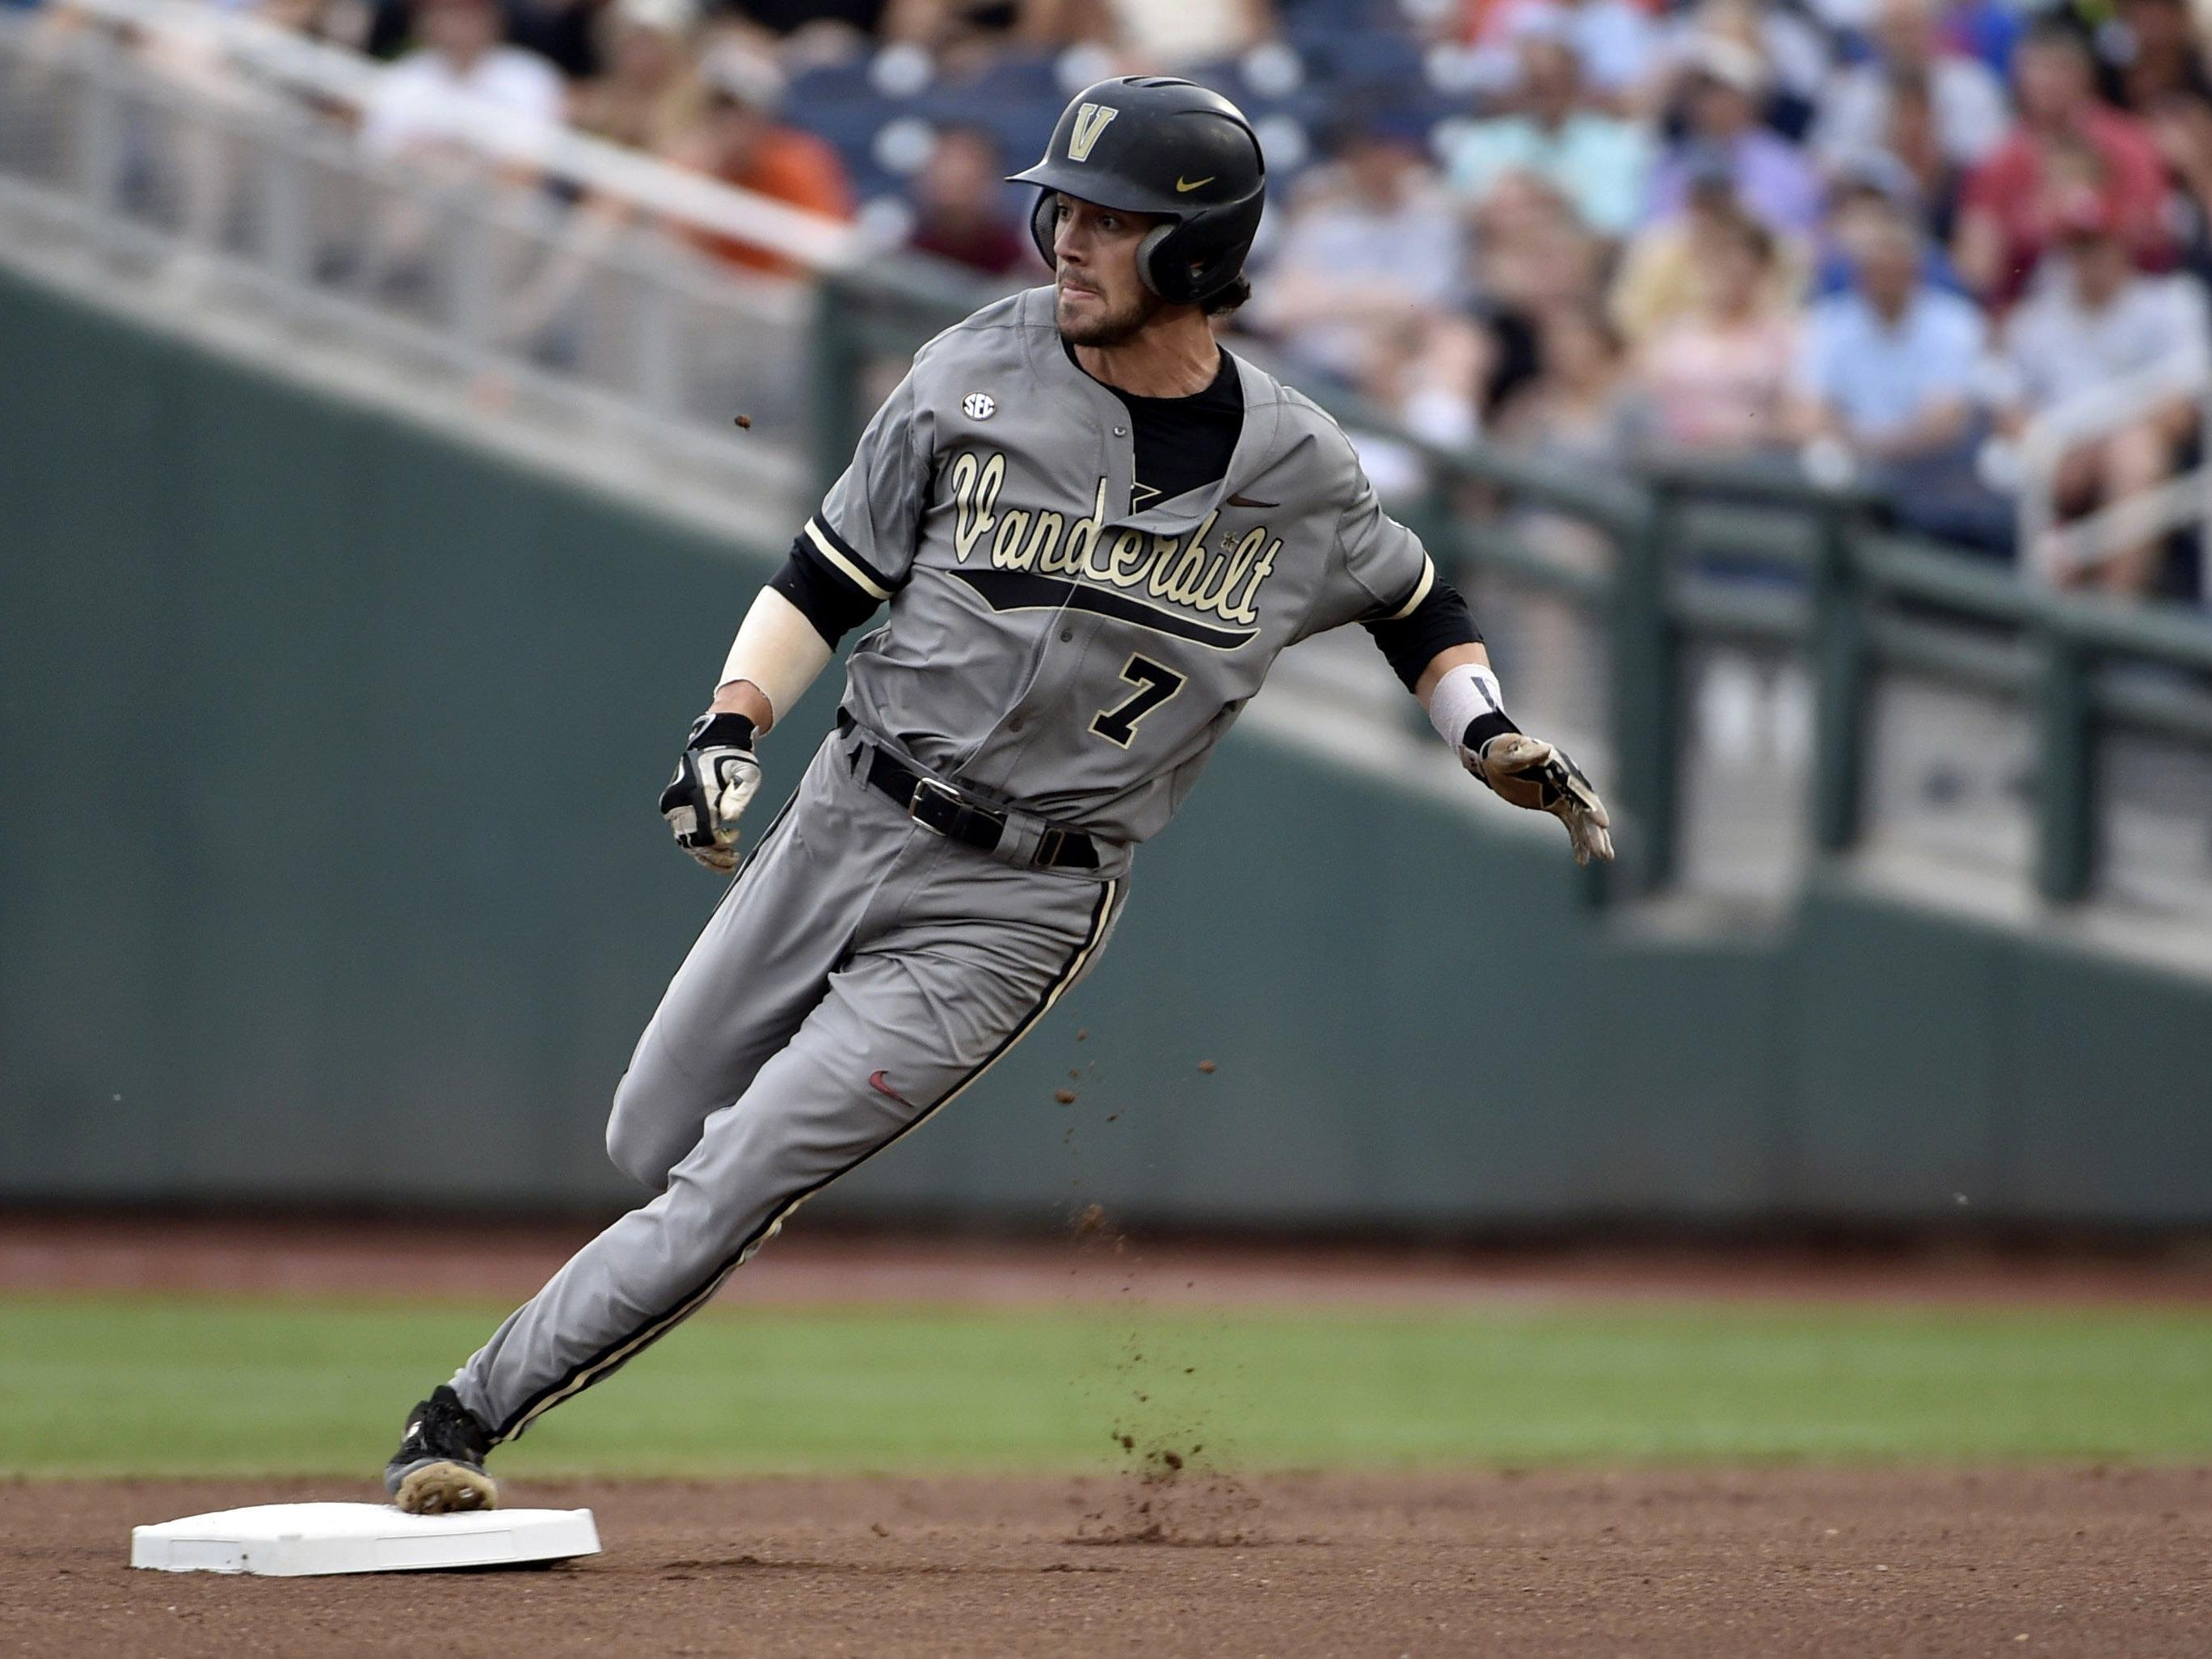 Former Vanderbilt and Blackman High player Zander Wiel will be sidelined for a month with a hand injury.